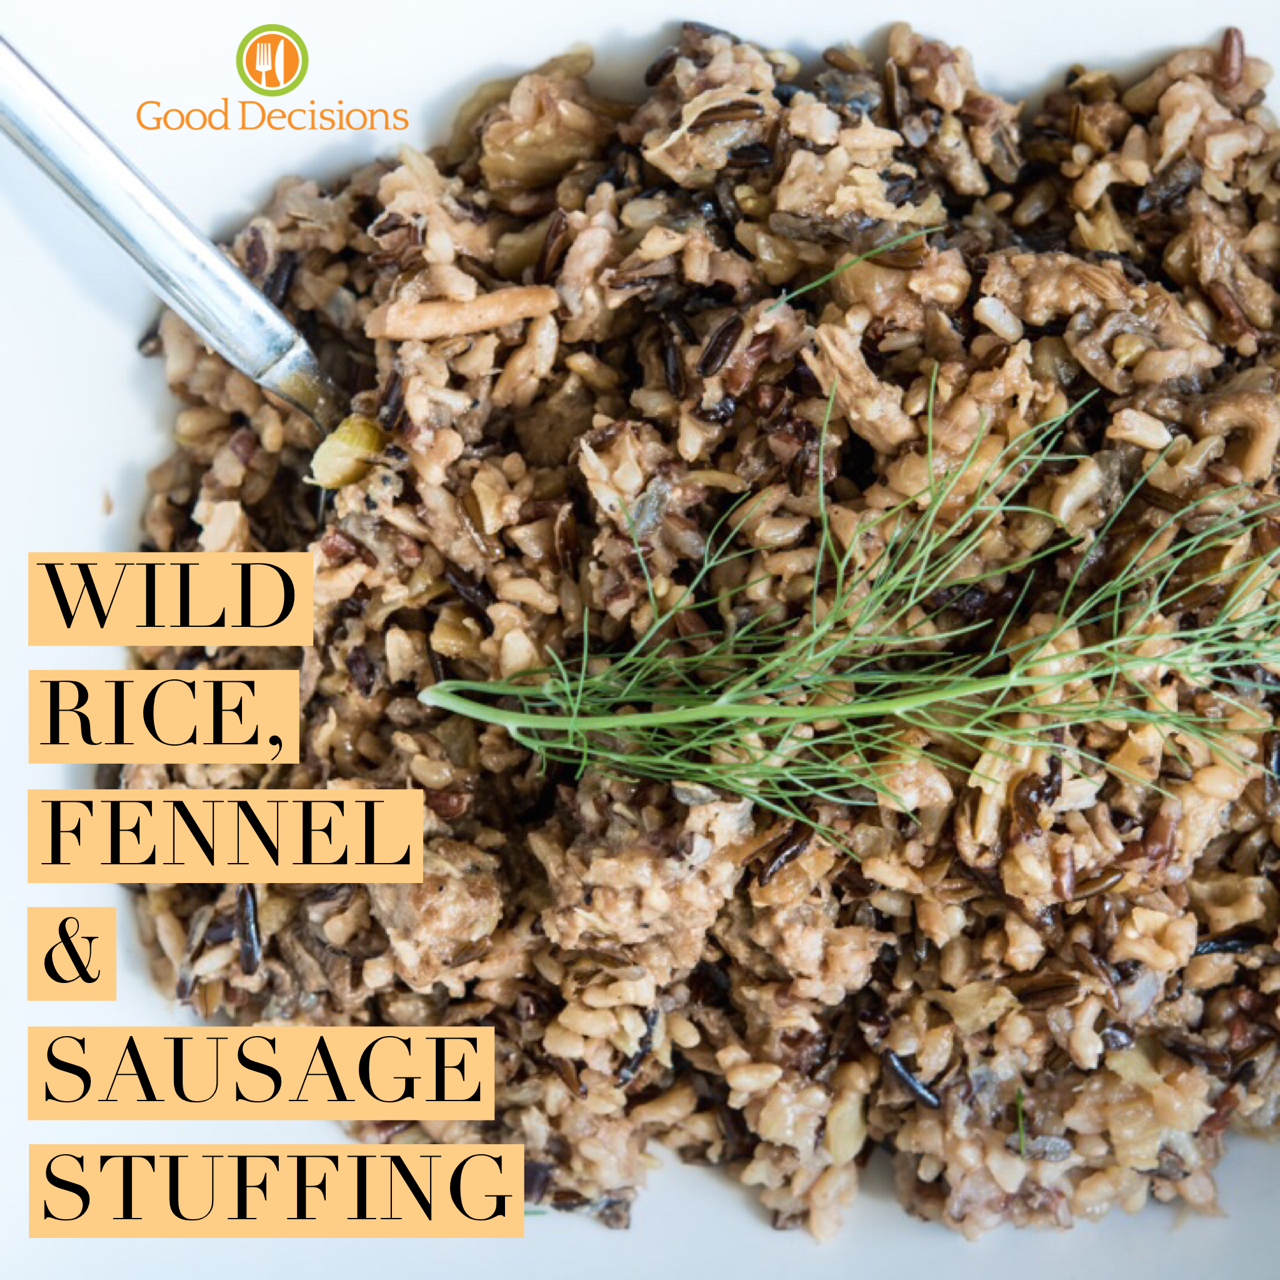 The addition of gas-reducing fennel in this gluten free wild rice stuffing makes it tummy-trouble free!